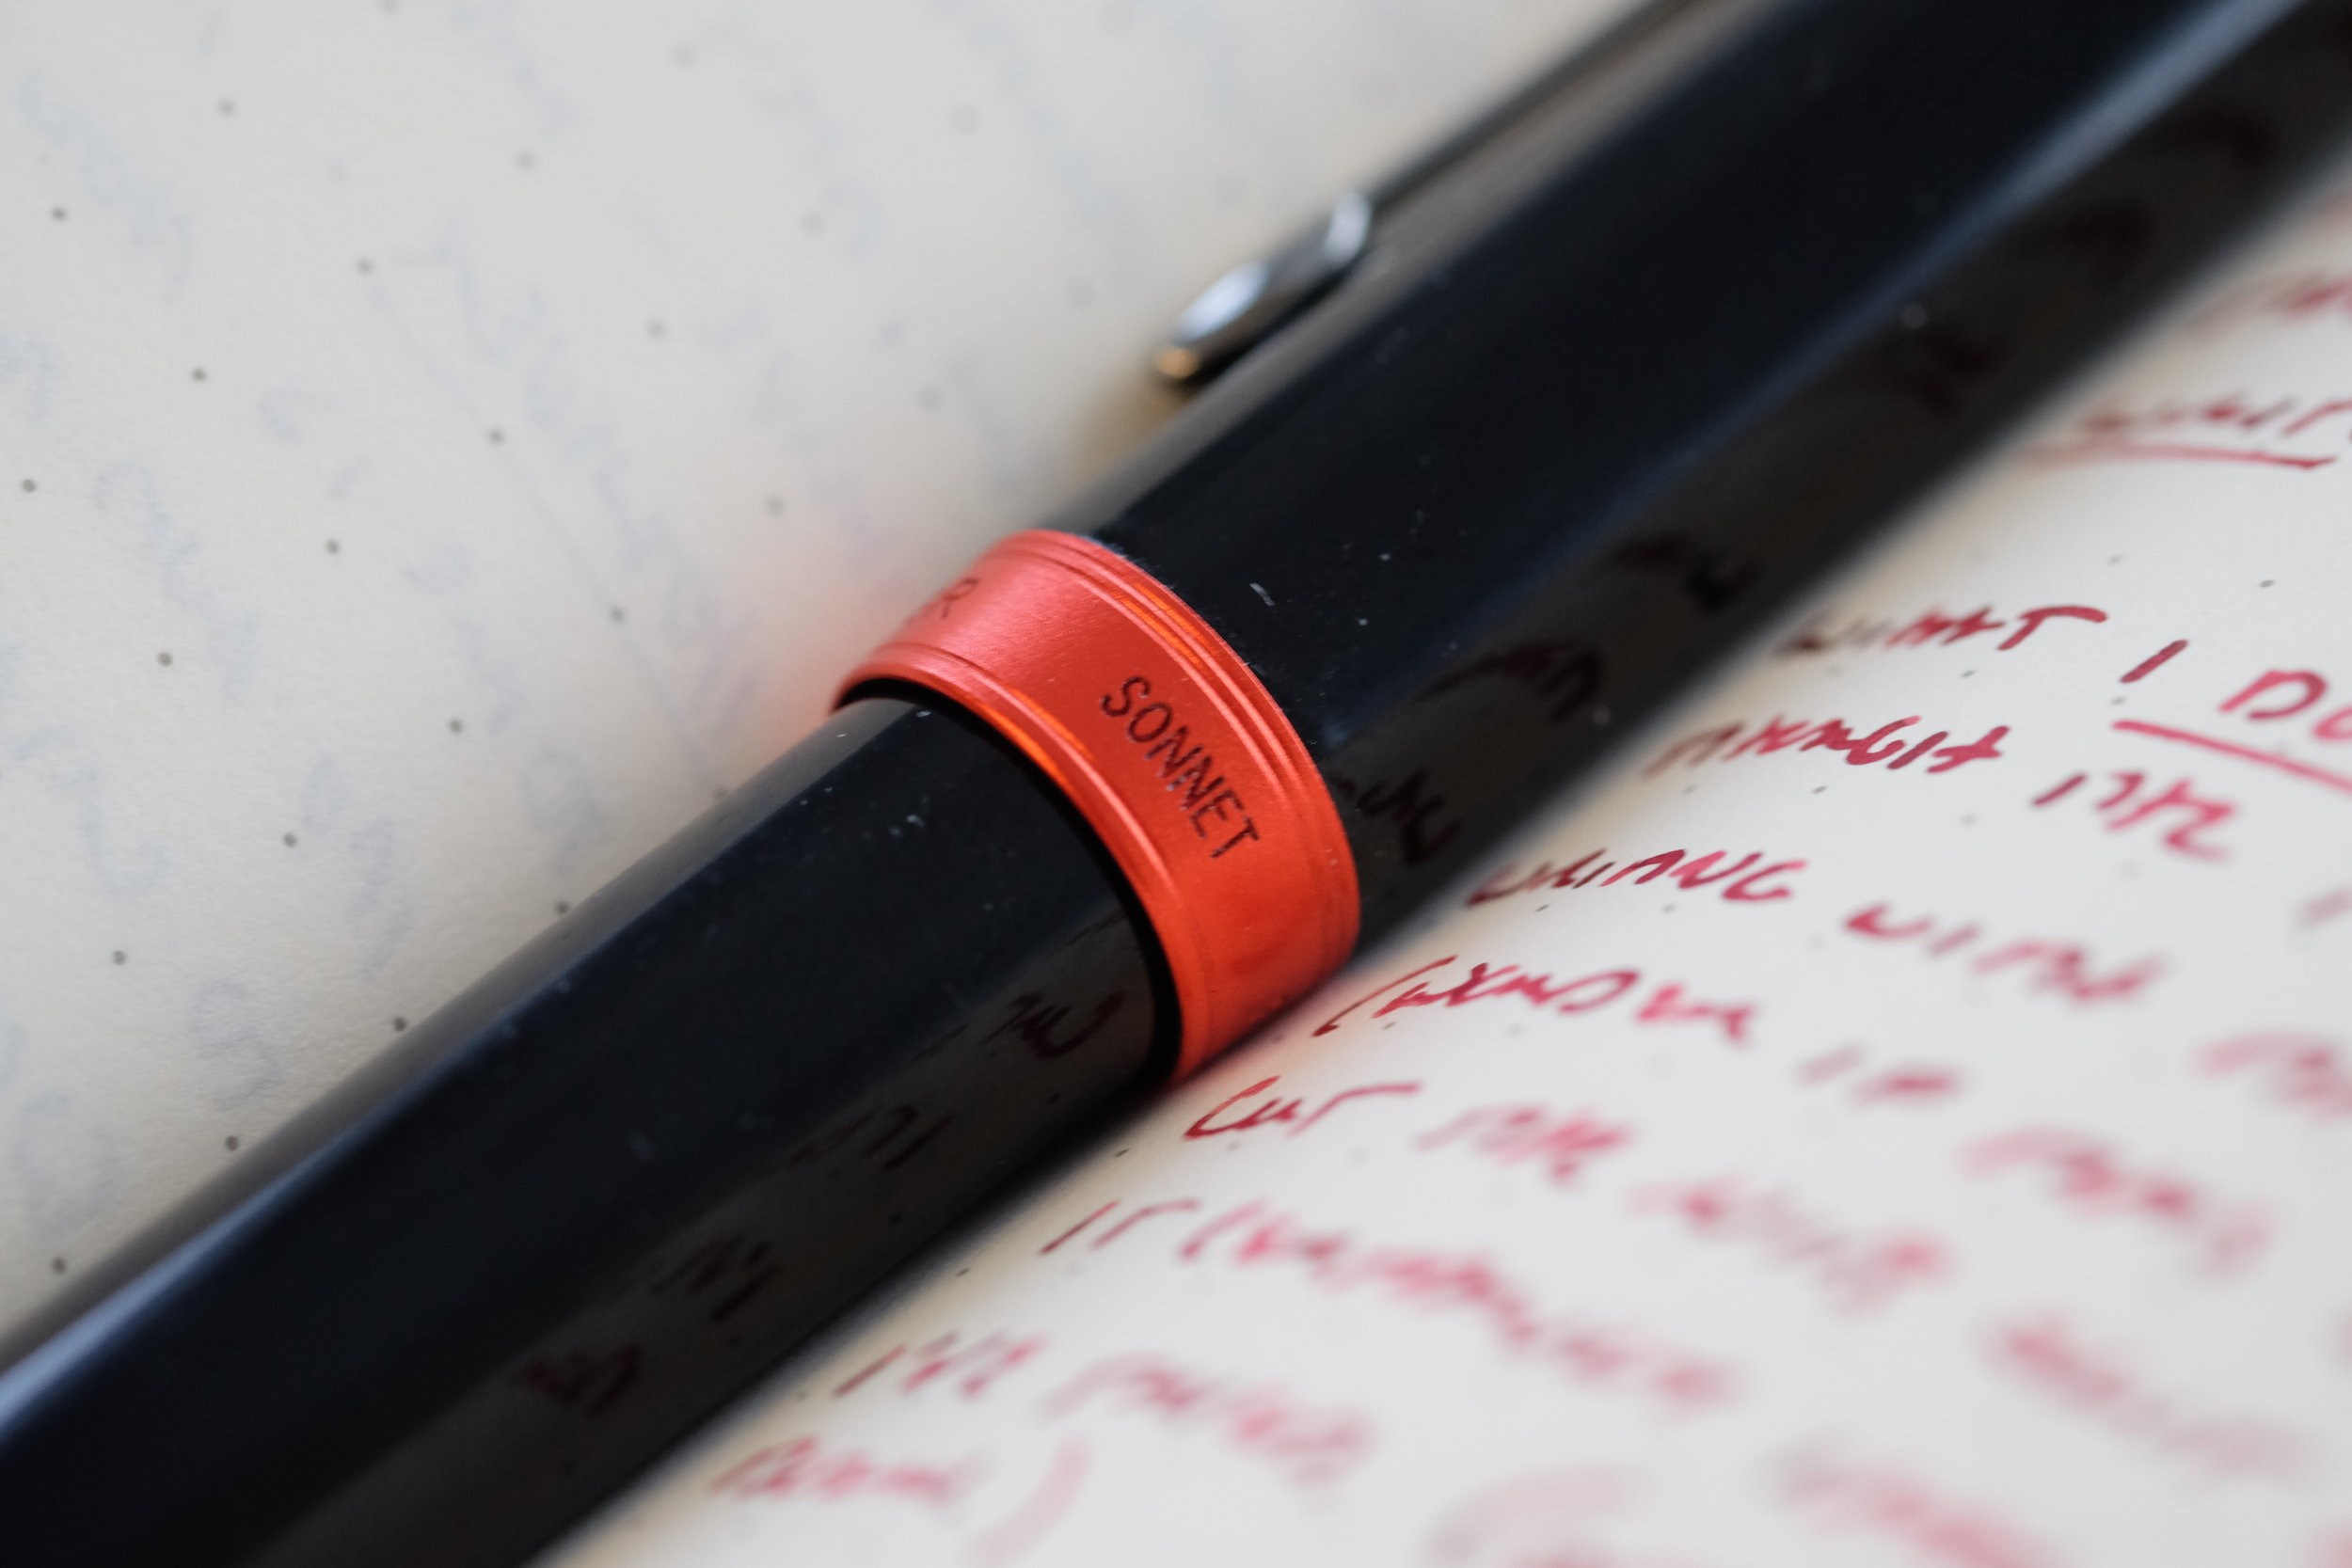 The red brushed metal cap band is my favorite aspect of this pen. It's a simple design, but the pen really pops.